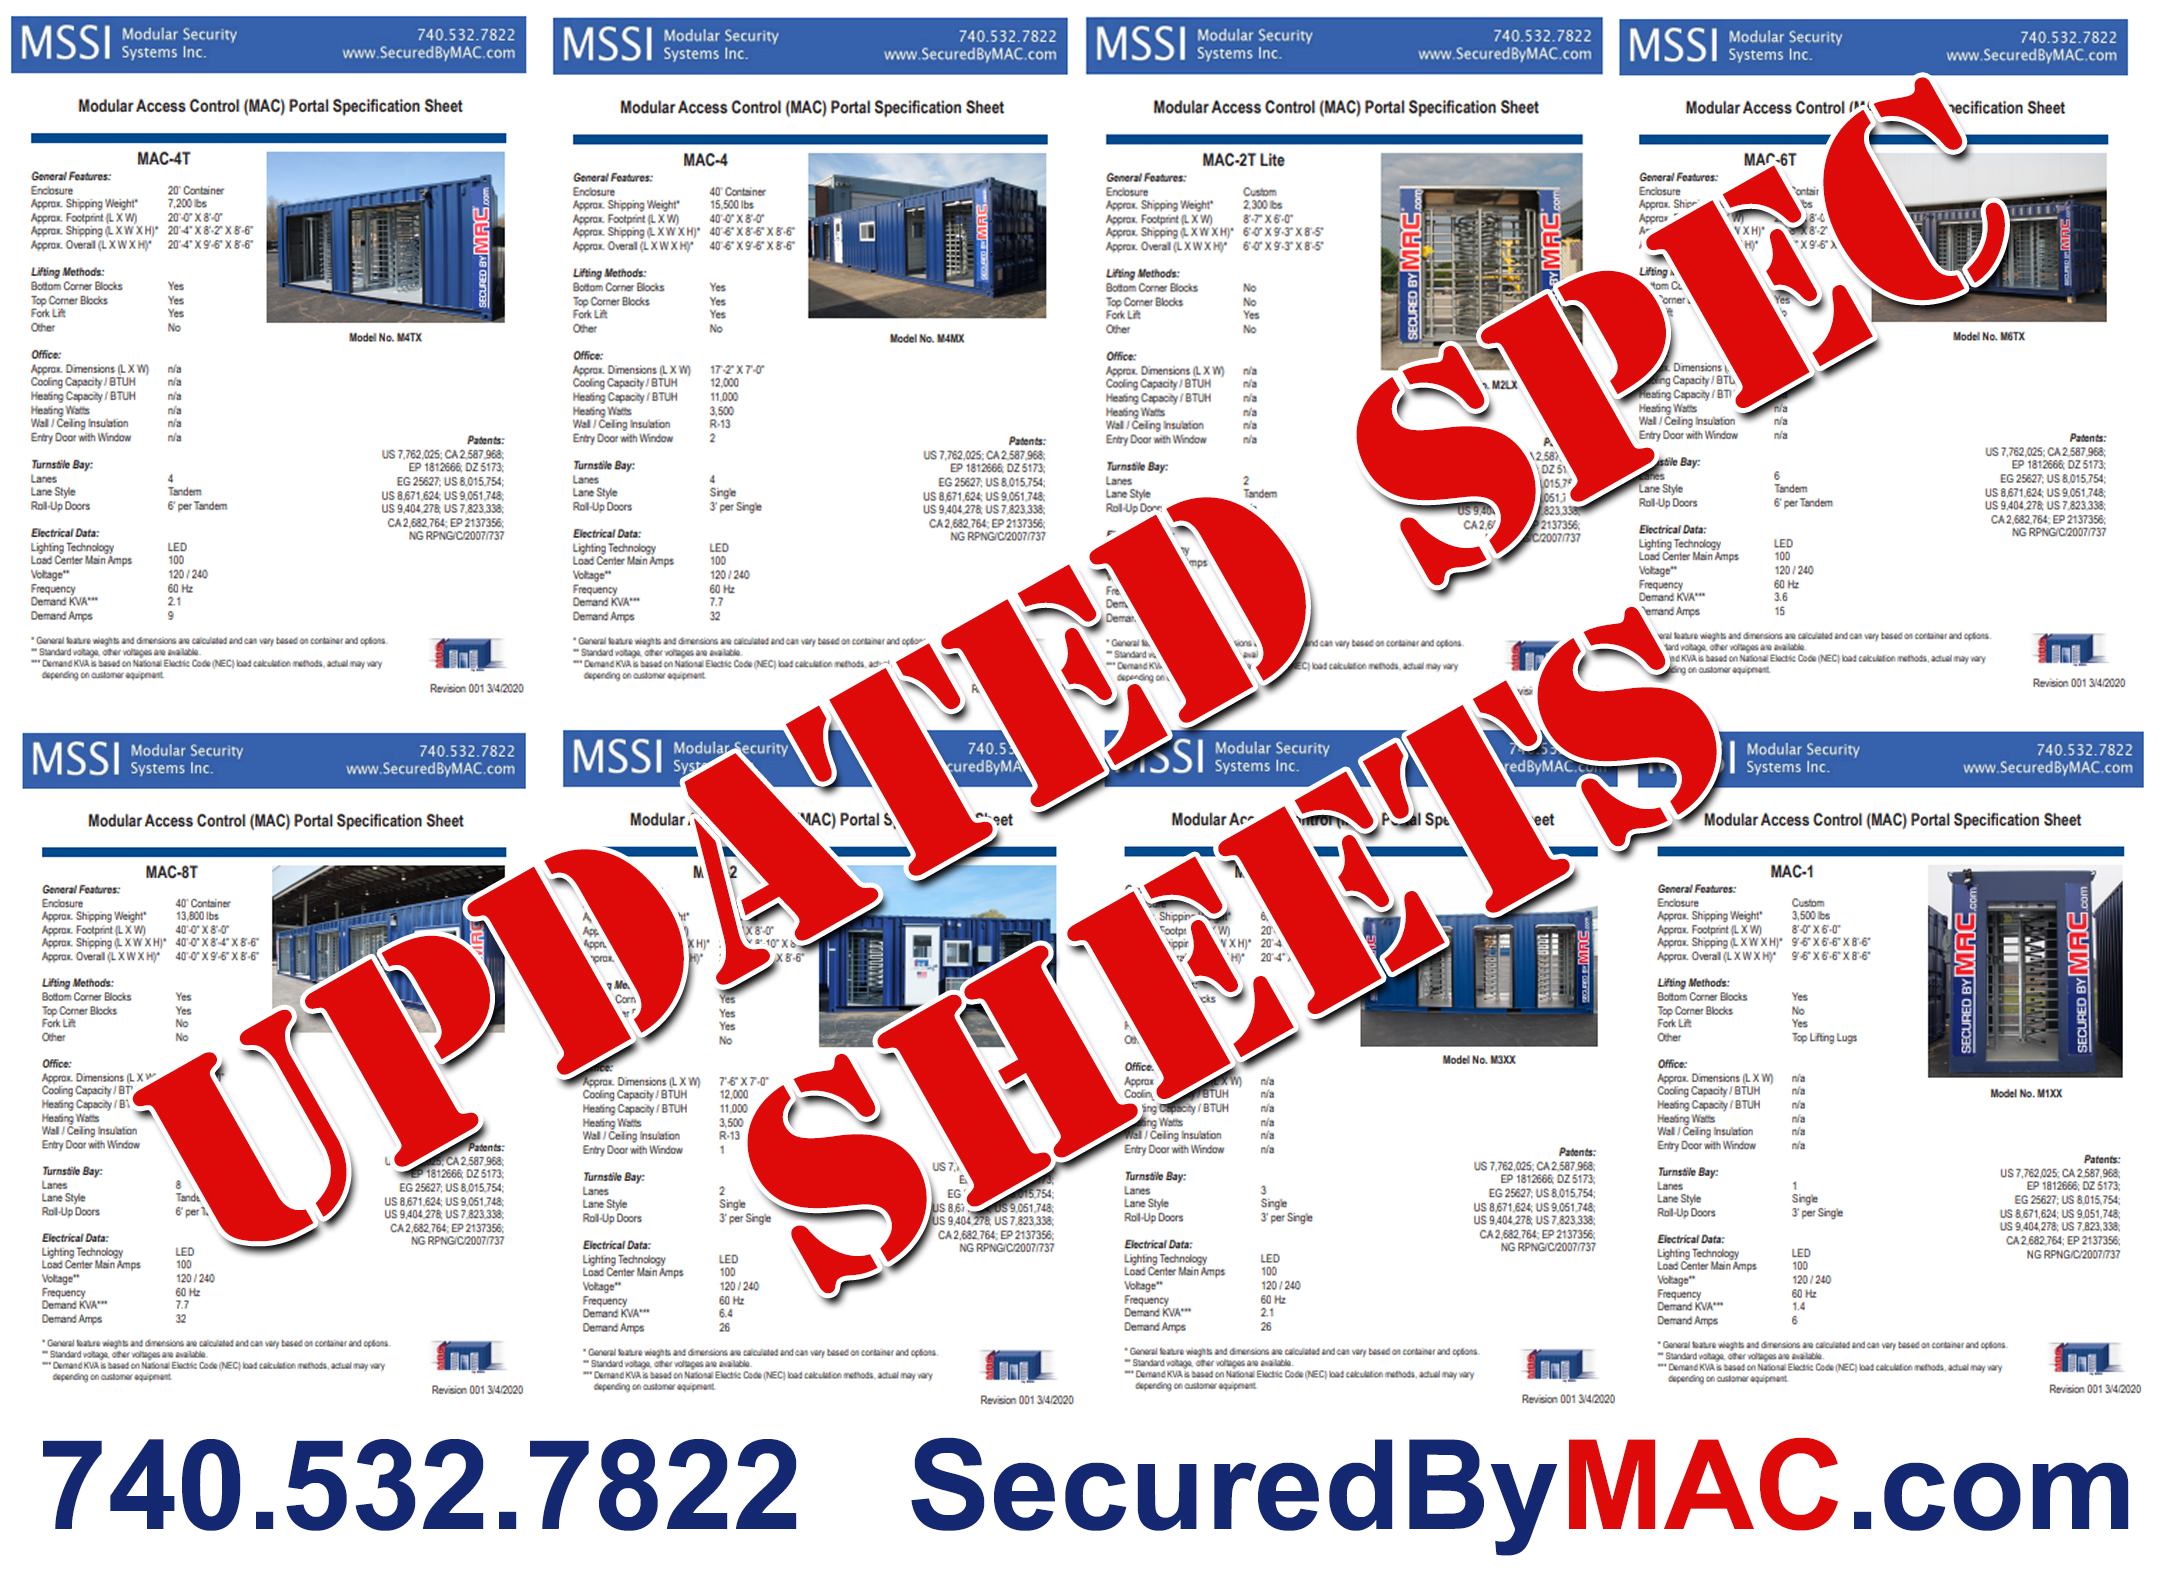 MSSI Offers Updated Spec Sheets for Perimeter Security Customers